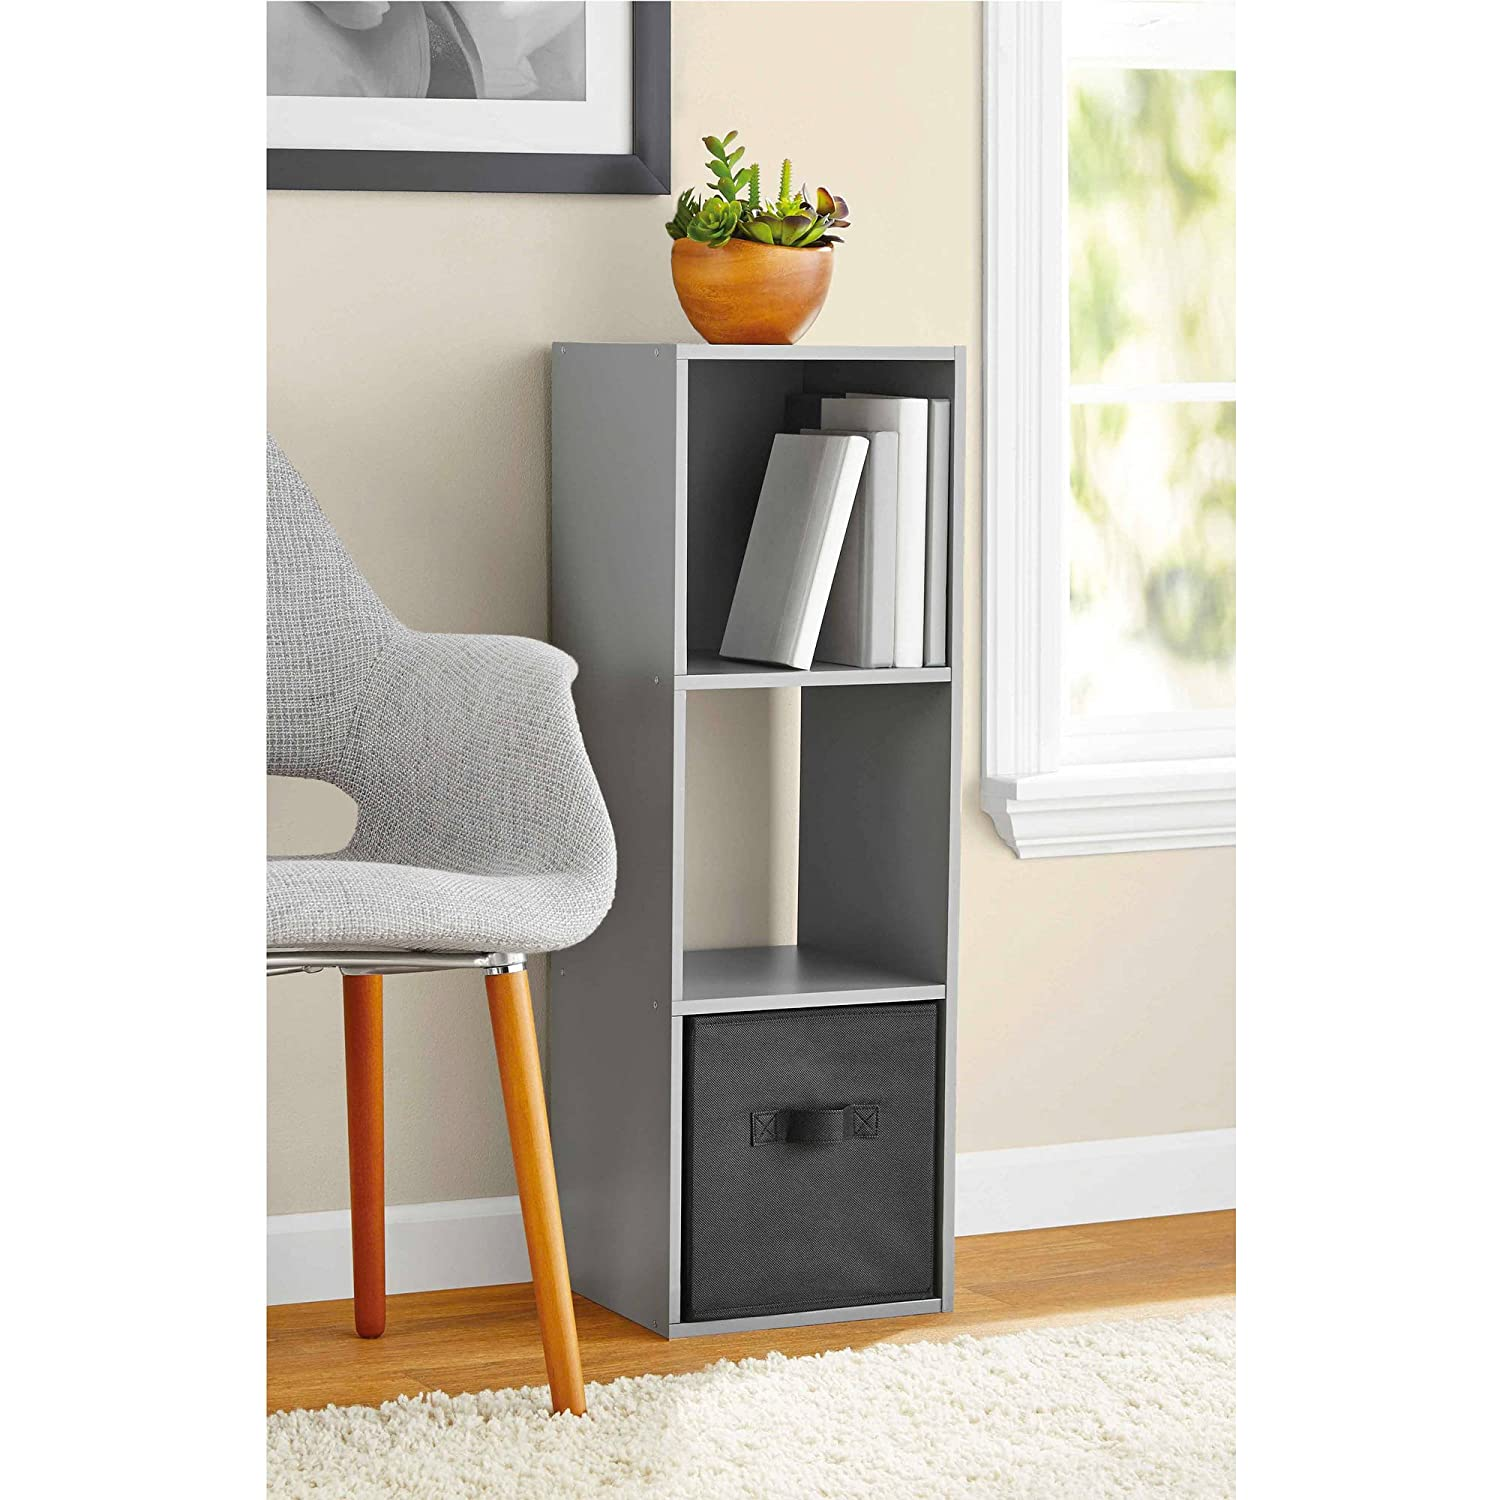 Sturdy Mainstays 3-Cube Organizer in Grey Finish for Living Room